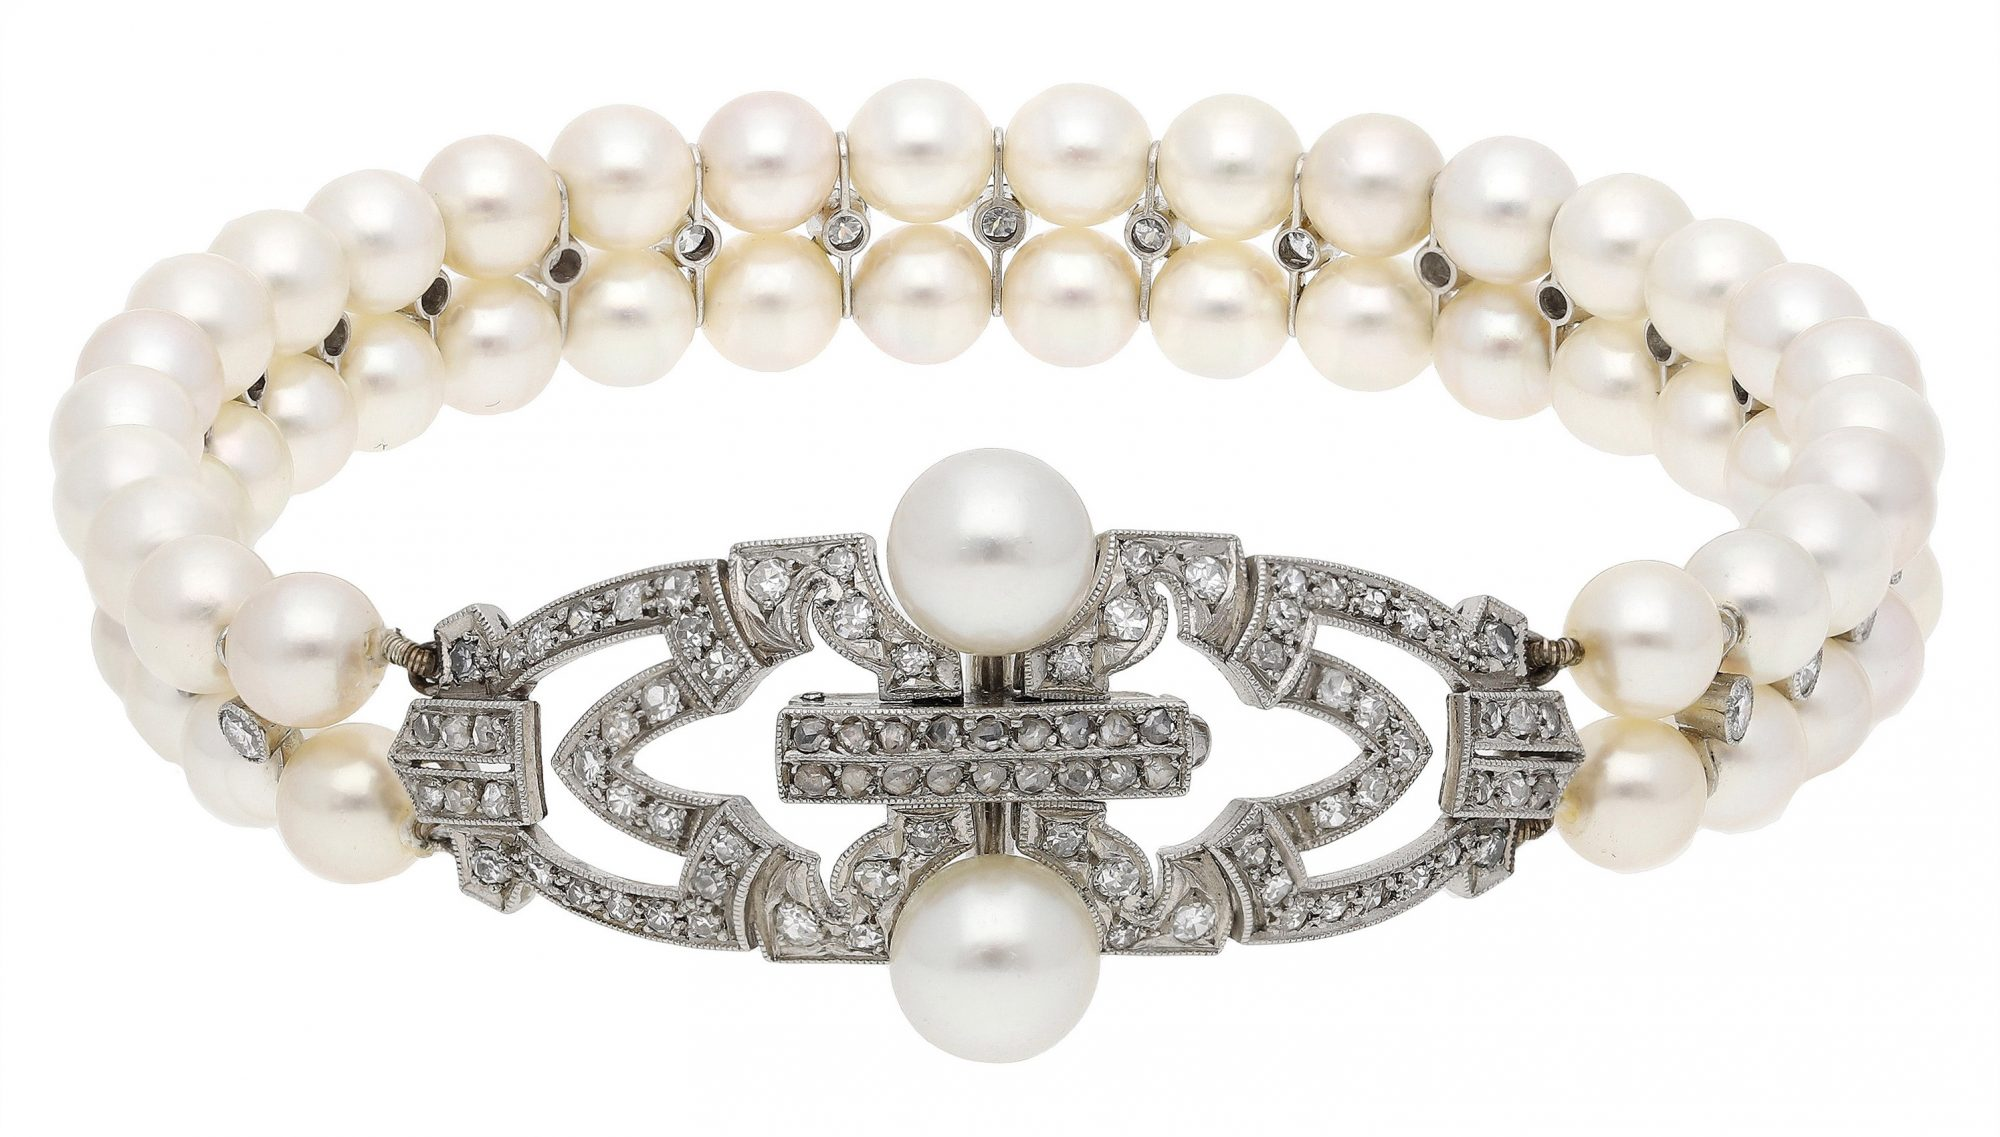 Formerly from the Collection of Her Royal Highness, The Princess Margaret, Countess of Snowdon: An Art Deco cultured pearl and diamond bracelet, circa 1925